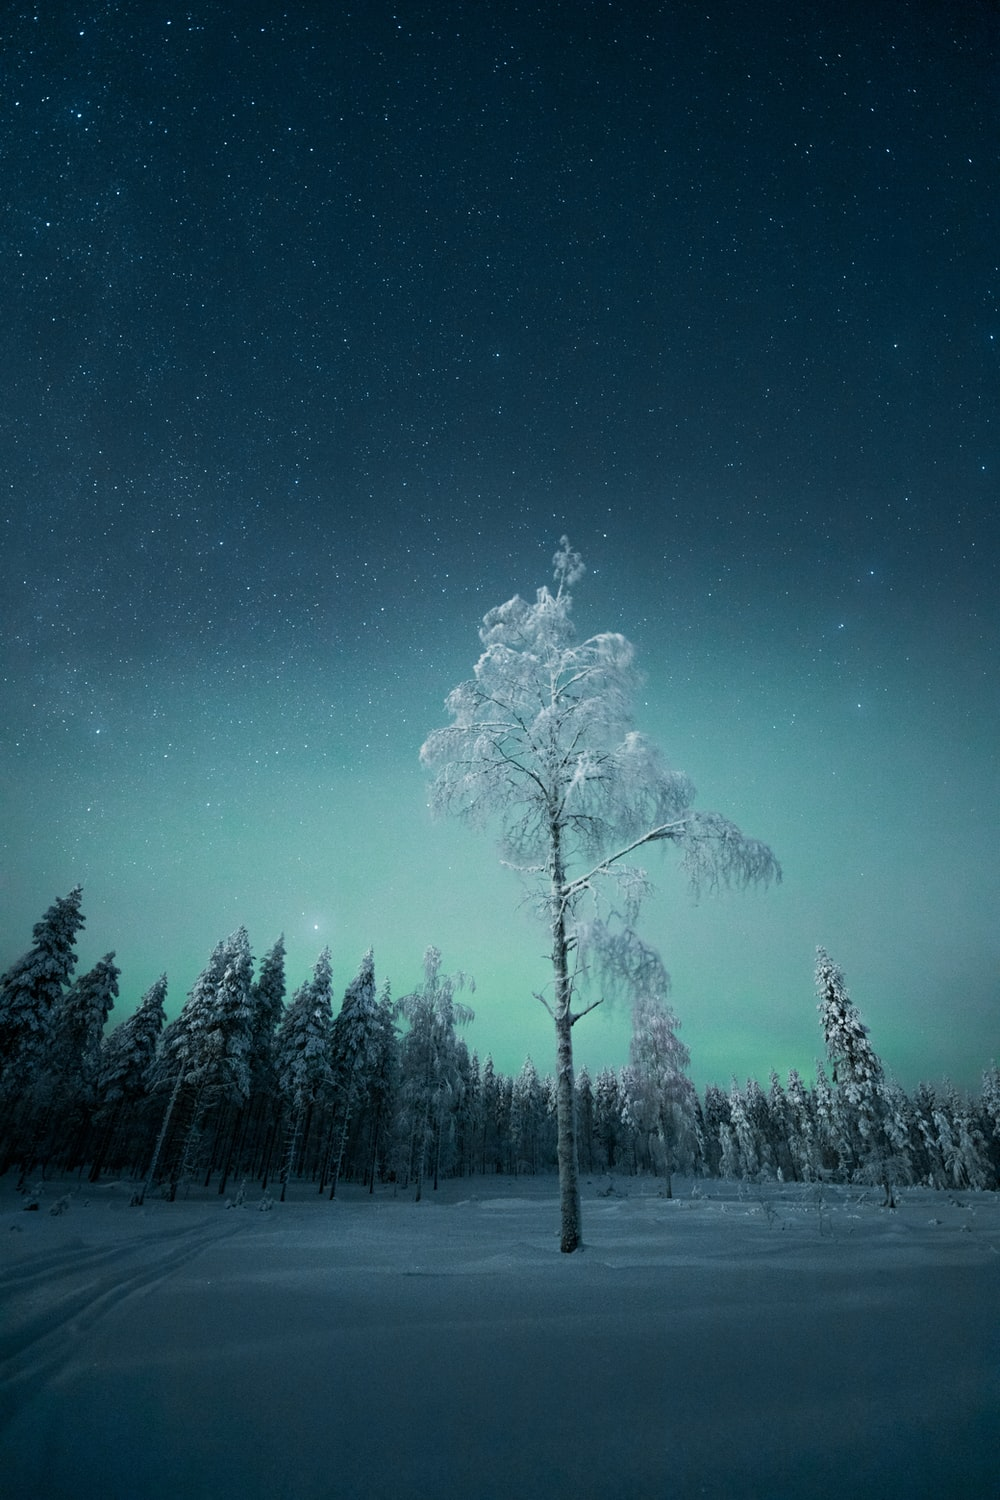 green trees under blue sky during night time